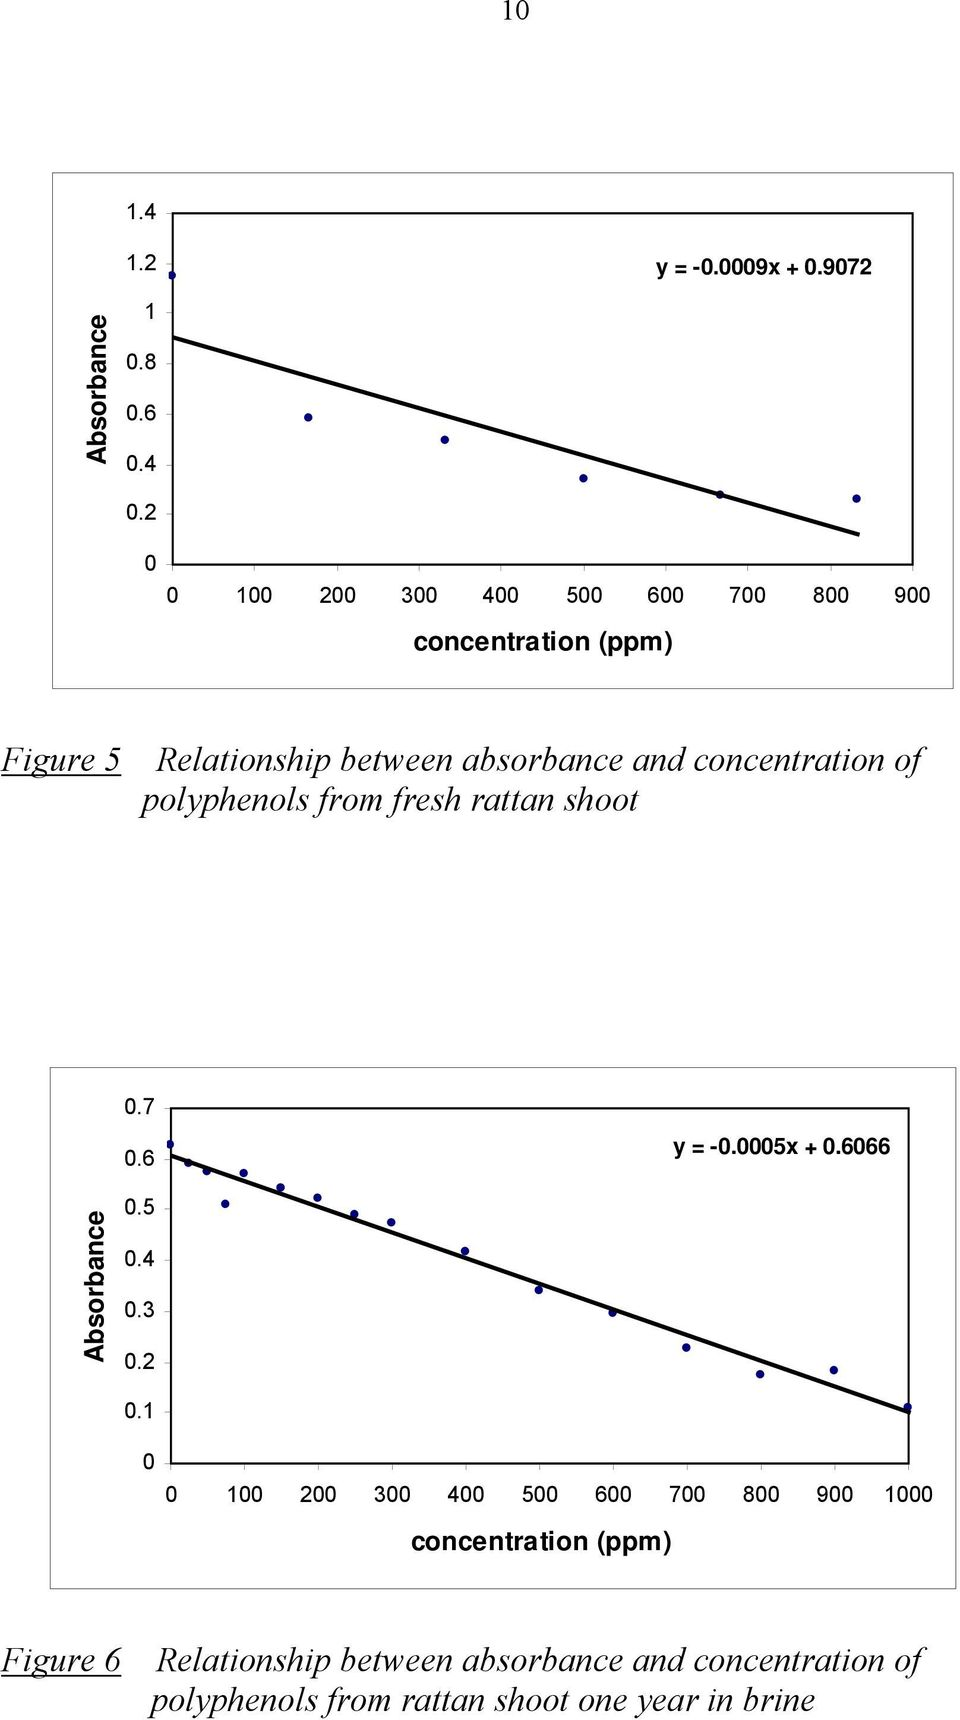 concentration of polyphenols from fresh rattan shoot 0.7 0.6 y = -0.0005x + 0.6066 Absorbance 0.5 0.4 0.3 0.2 0.